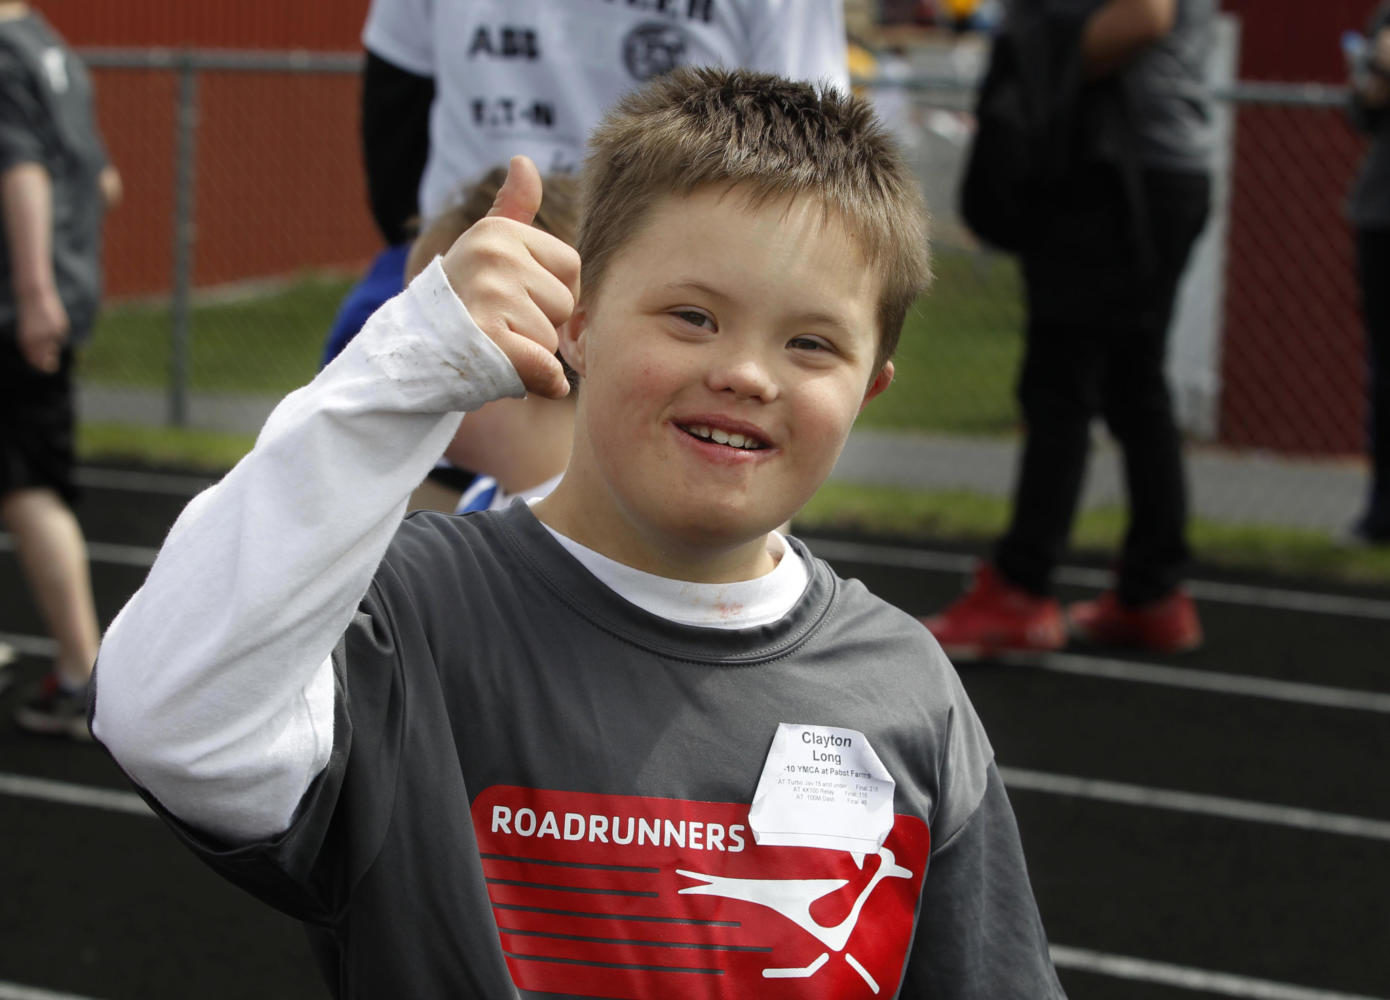 Clayton+Long%2C+representing+the+YMCA+at+Pabst+Farms%2C+is+all+smiles+after+he+competes+and+crosses+the+line+in+the+100+meter+dash.+Over+1800+special+olympic+athletes+from+the+the++greater-Milwaukee+area+competed+in+track+and+field+events+with++first-%2C+second-+and+third-place+finishers+able+to+qualify+for+a+place+in+the+Special+Olympics+Wisconsin+State+Summer+Games.+The+event+took+place+at+Muskego+High+School%2C+Saturday%2C+May+4%2C+2013.++Journal+Sentinel+photo+by+RICK+WOOD%2F+RWOOD%40JOURNALSENTINEL.COM